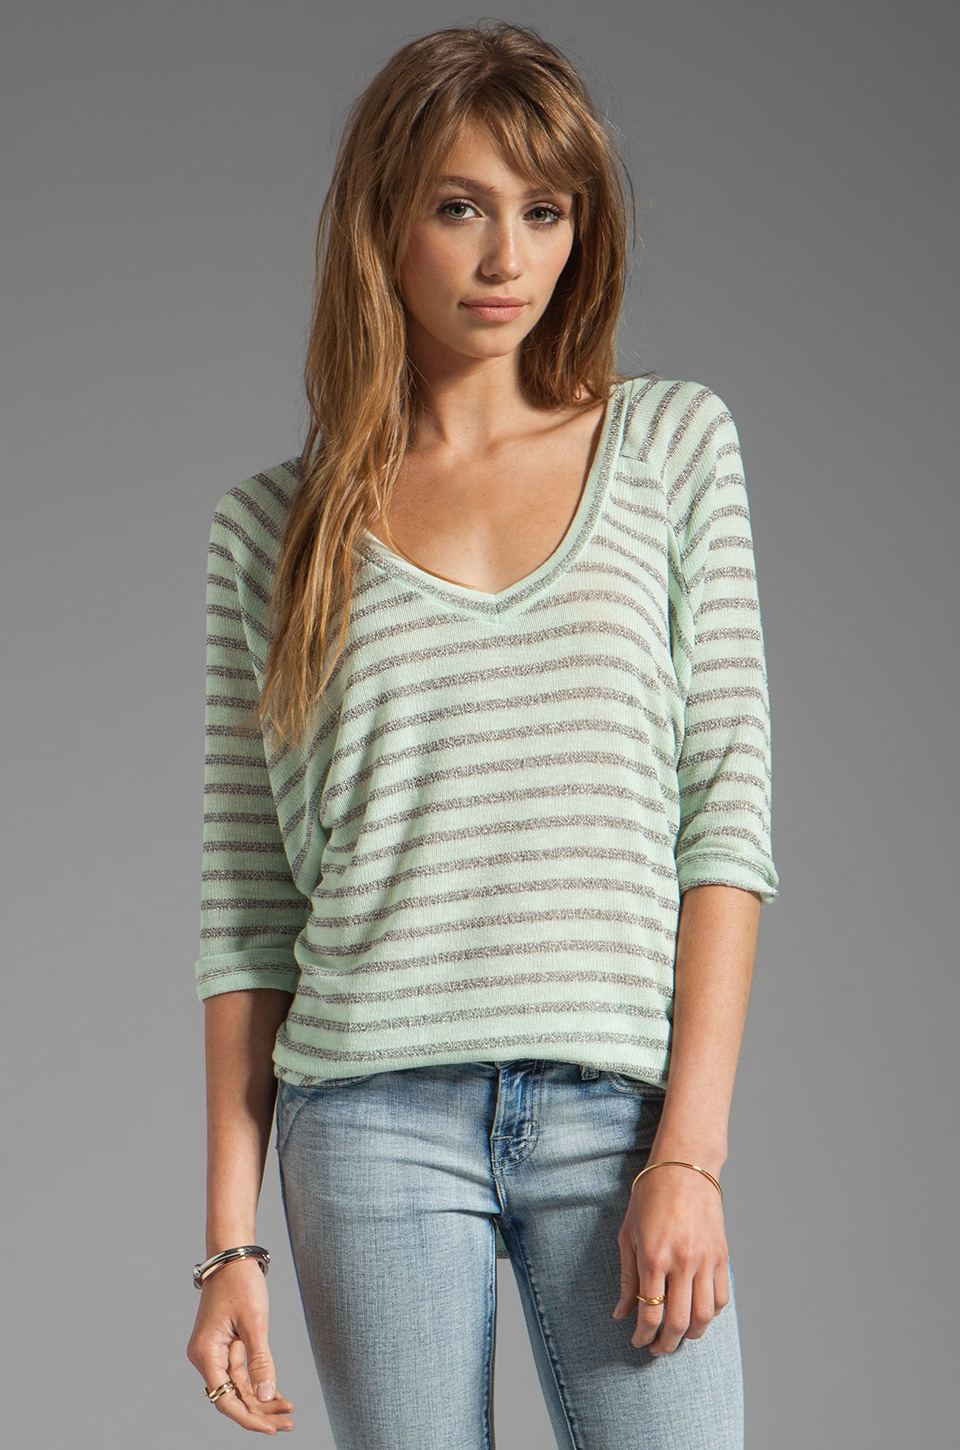 Splendid Disco Stripe Loose Knit Top in Pistachio